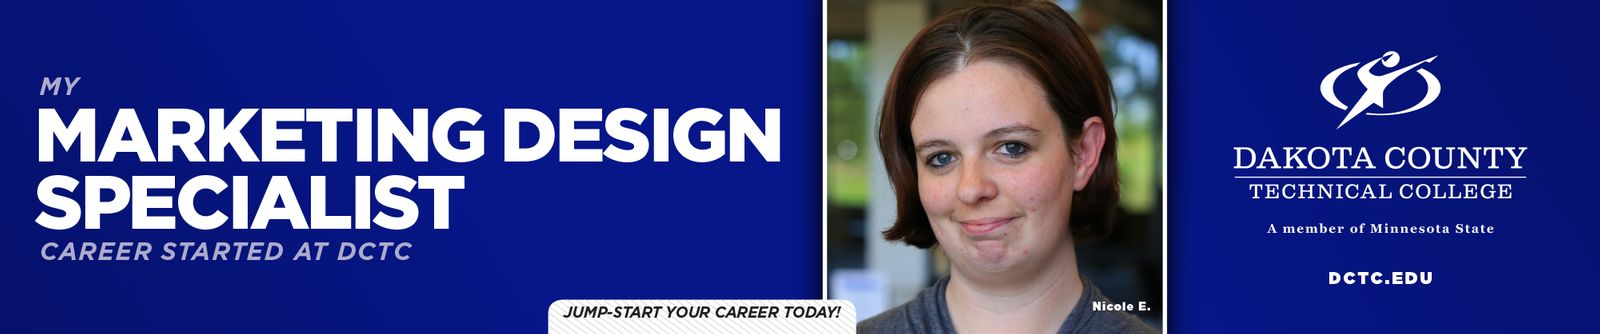 Read about Nicole's journey in Marketing Design at DCTC here!